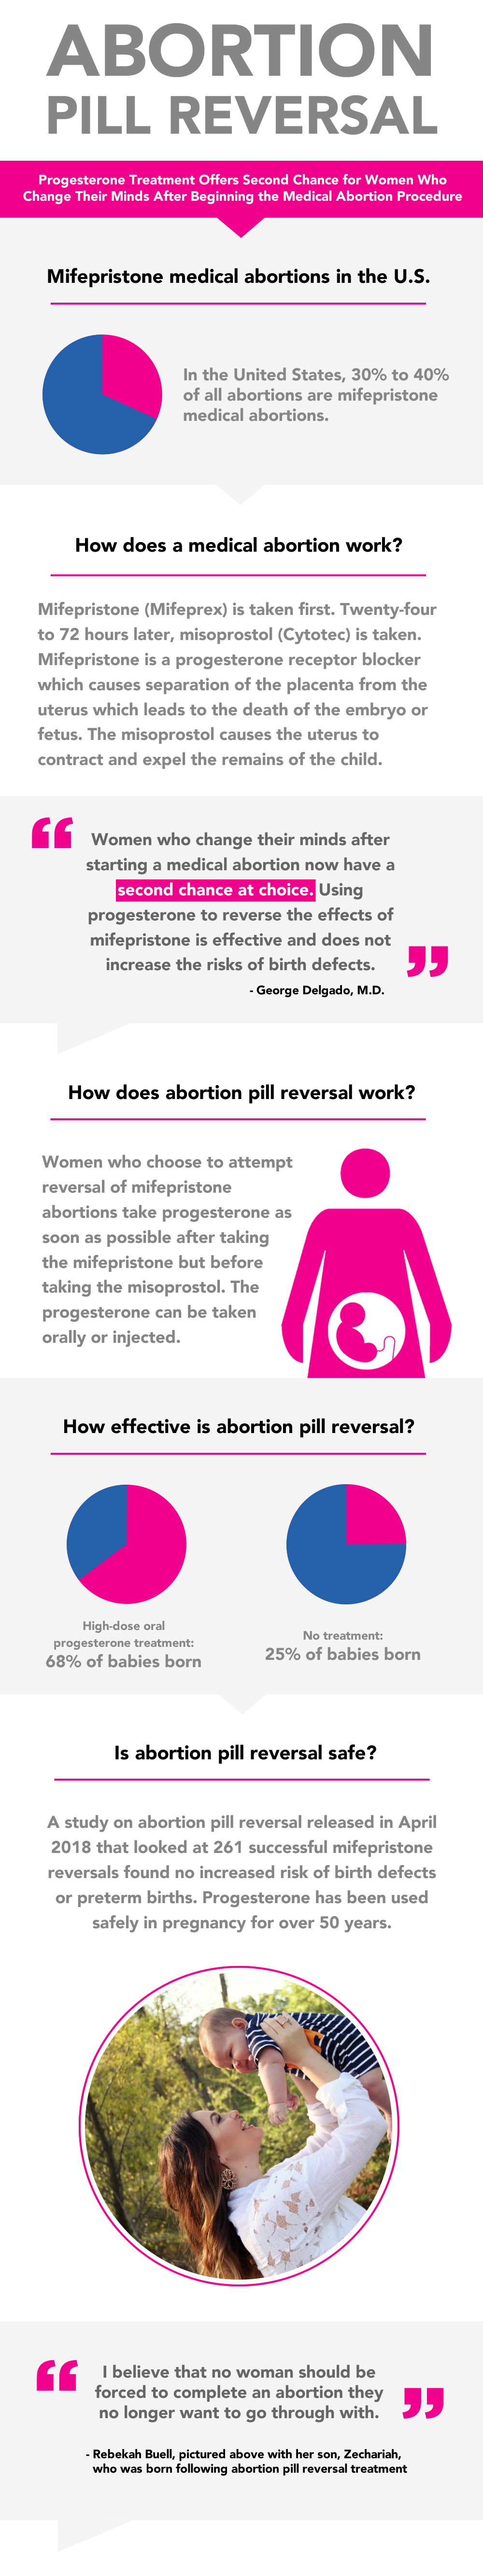 Abortion Pill Reversal Infographic